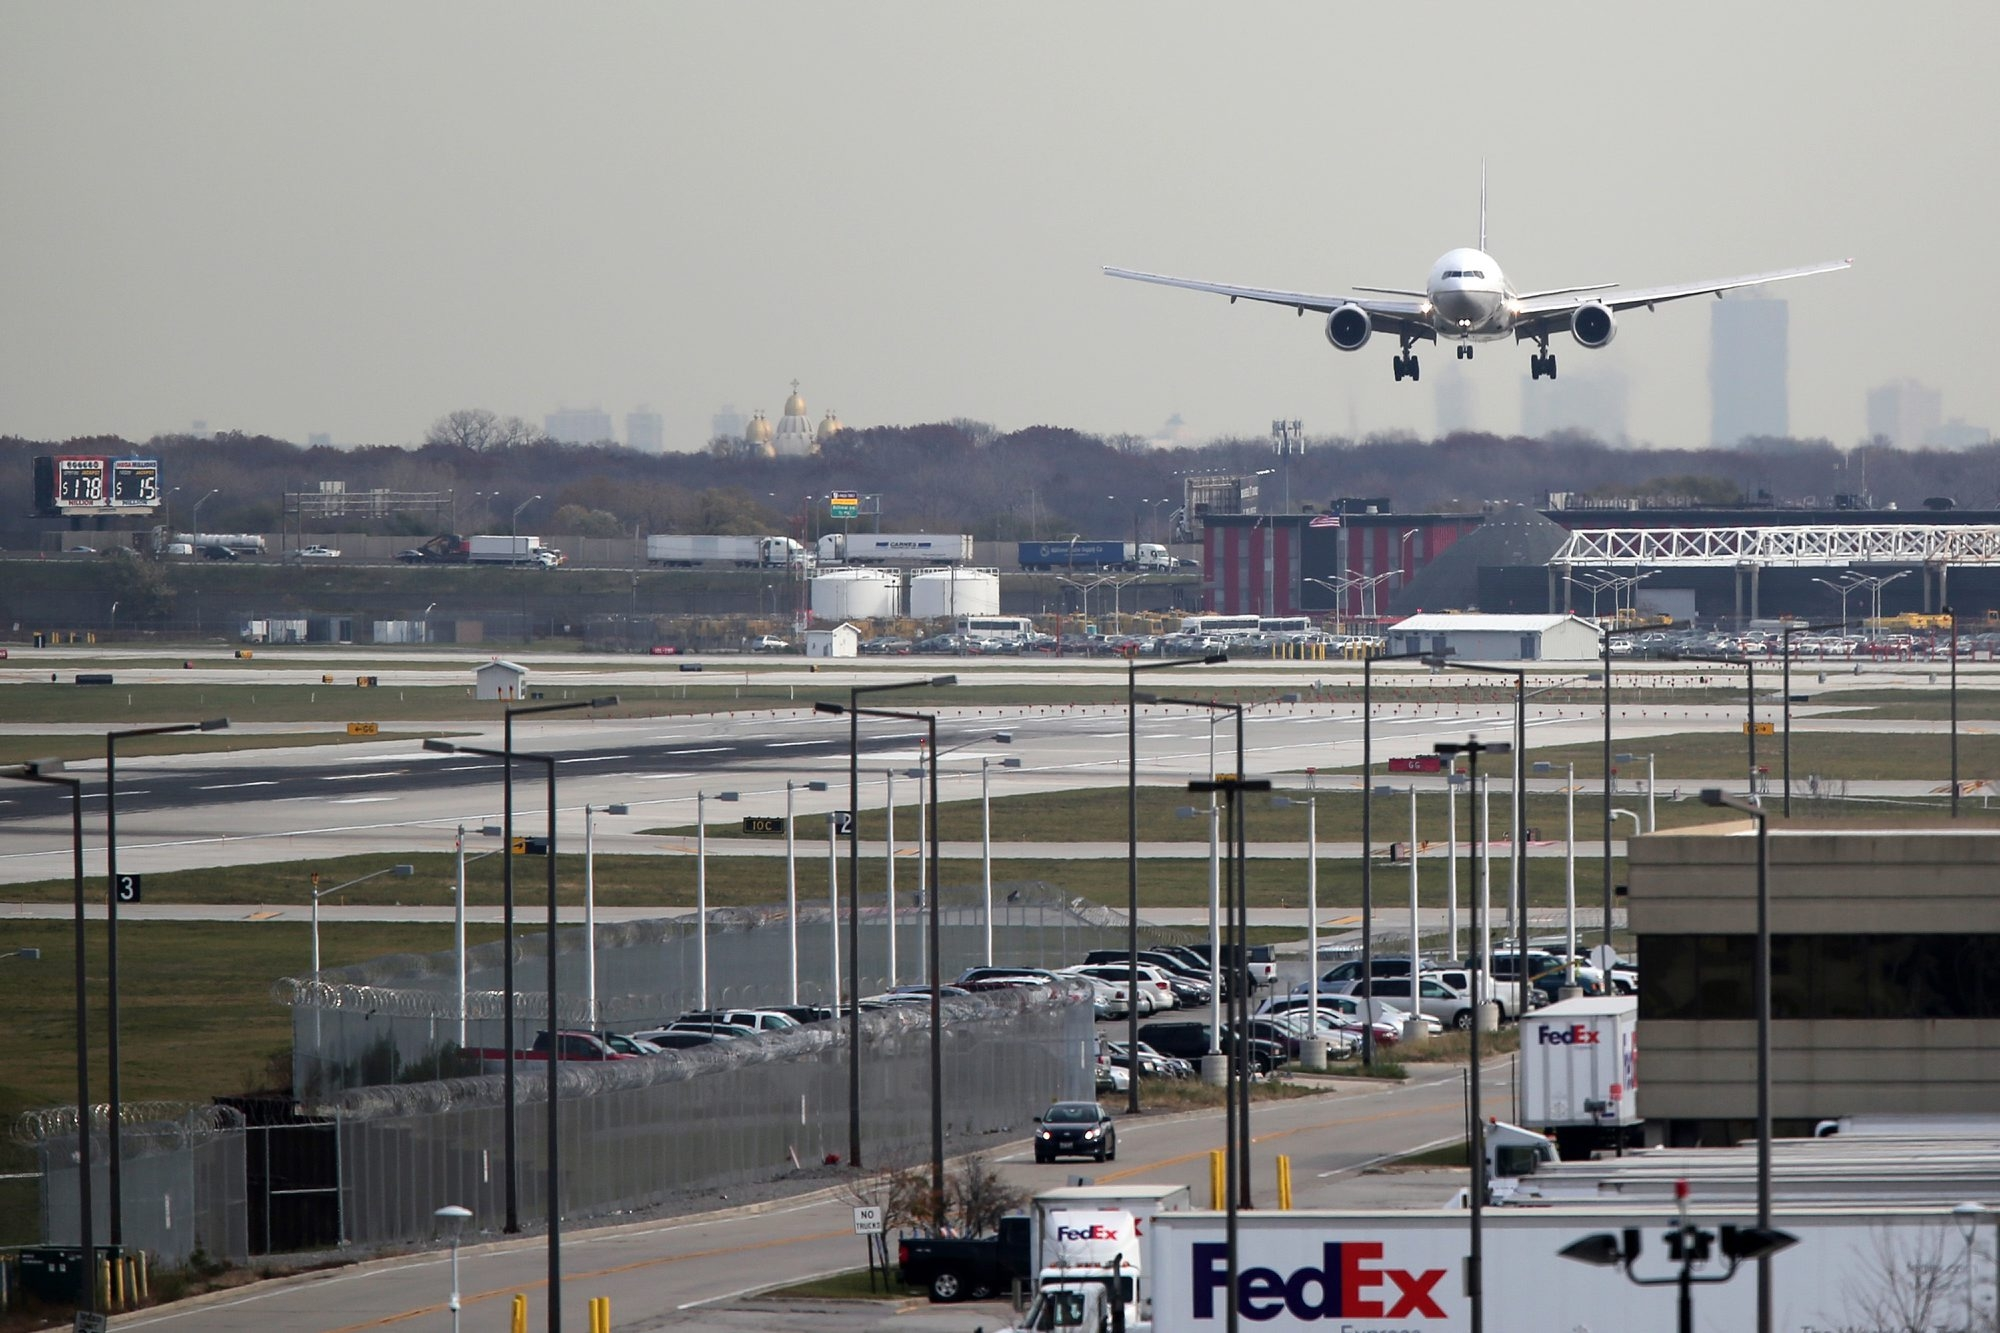 United Airlines, which operates at O'Hare Airport in Chicago, plans on rolling out a revamped website, new food and beverage service, Wi-Fi on more of its jets and an upgraded fleet.